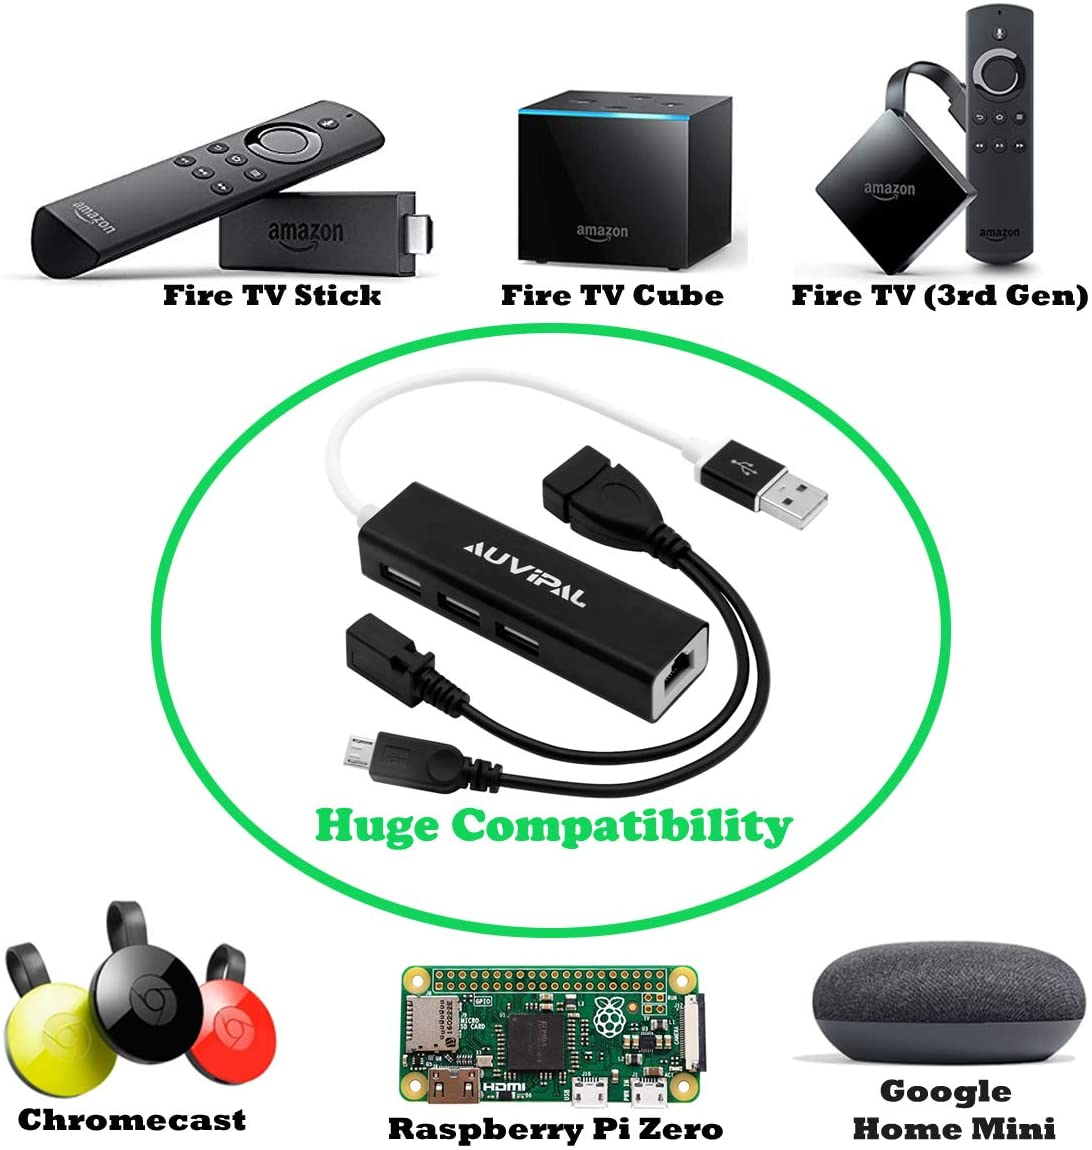 Raspberry Pi Zero AuviPal LAN Ethernet Adapter with 3 Ports USB OTG Hub for Streaming TV Stick Powered Micro USB OTG Cable Included Chromecast Google Home Mini